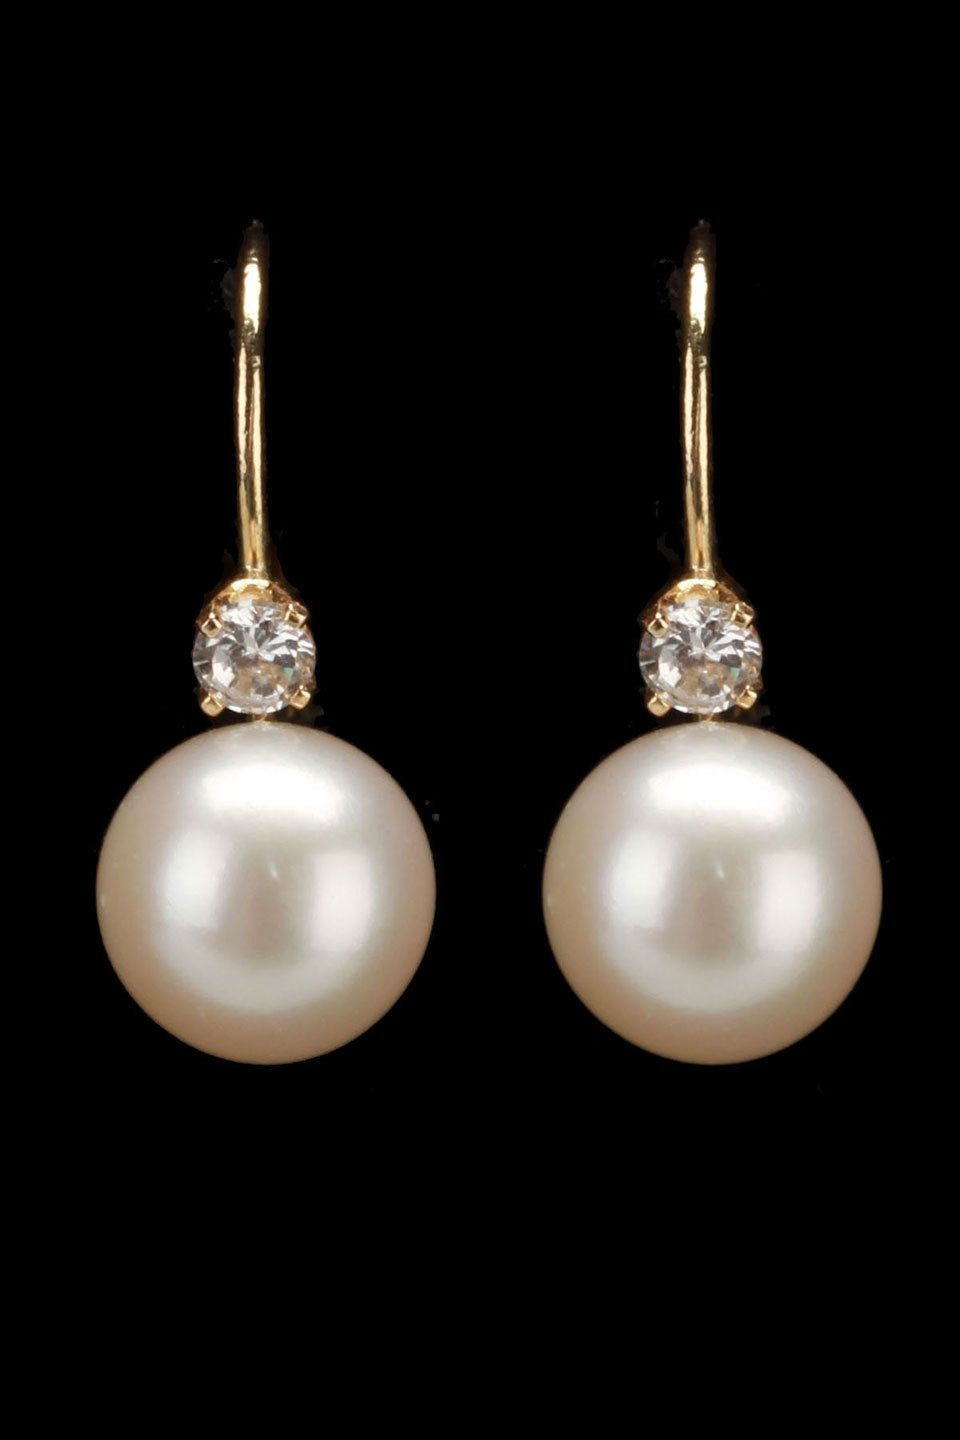 Dangle Pearl Earrings, Pearl Drop Earrings,freshwater Pearl Earring Pertaining To Most Recent Dangling Freshwater Cultured Pearl Rings (View 8 of 25)